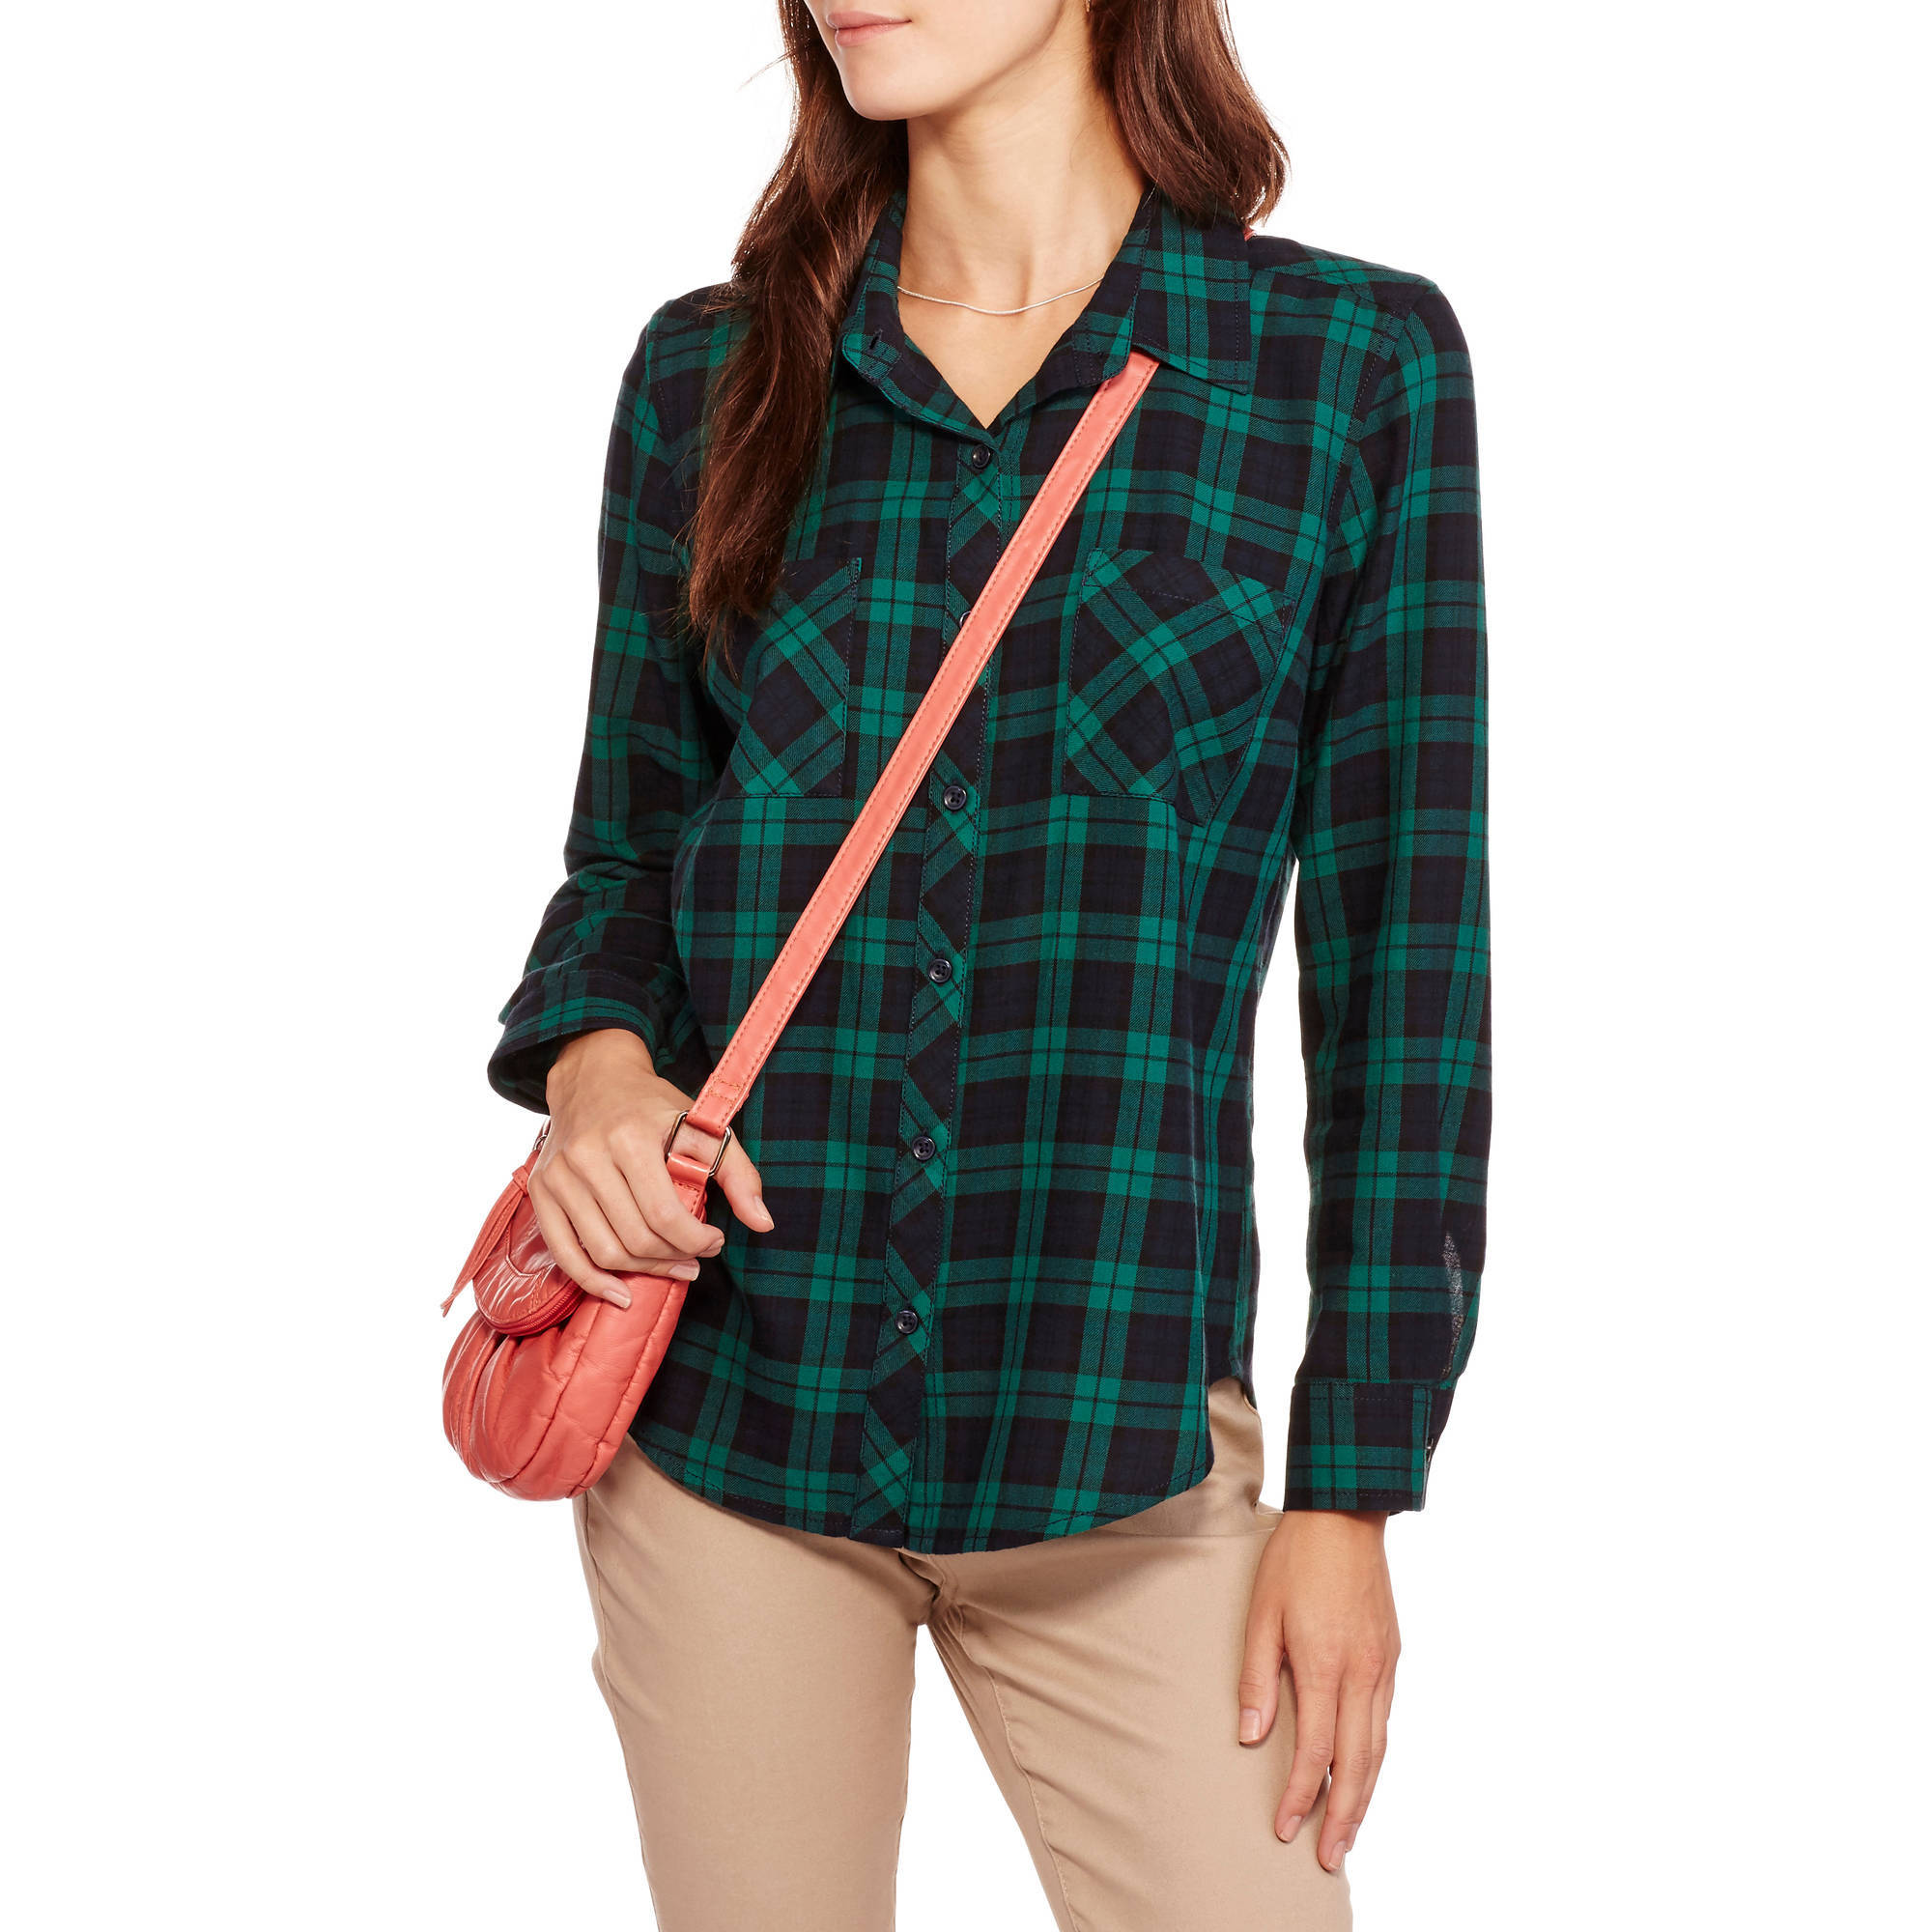 Faded Glory Women's Long Sleeve Classic Button Front Plaid Shirt with Pockets